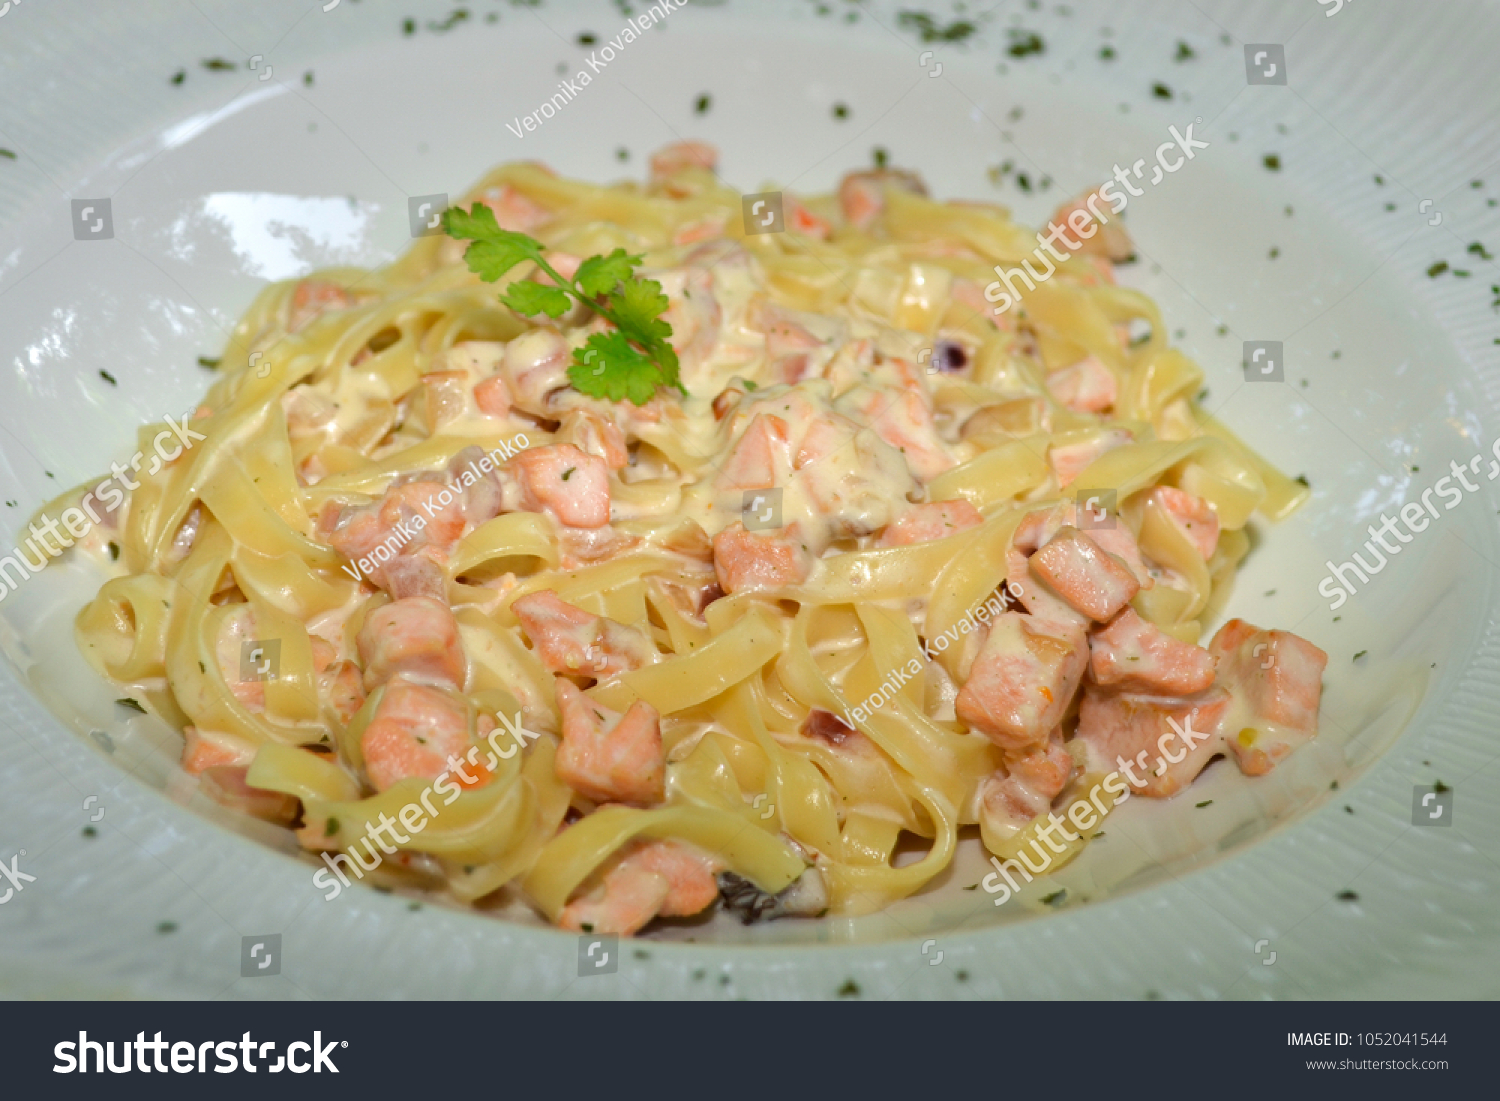 Delicious Tasty Seafood Pasta Homemade ...